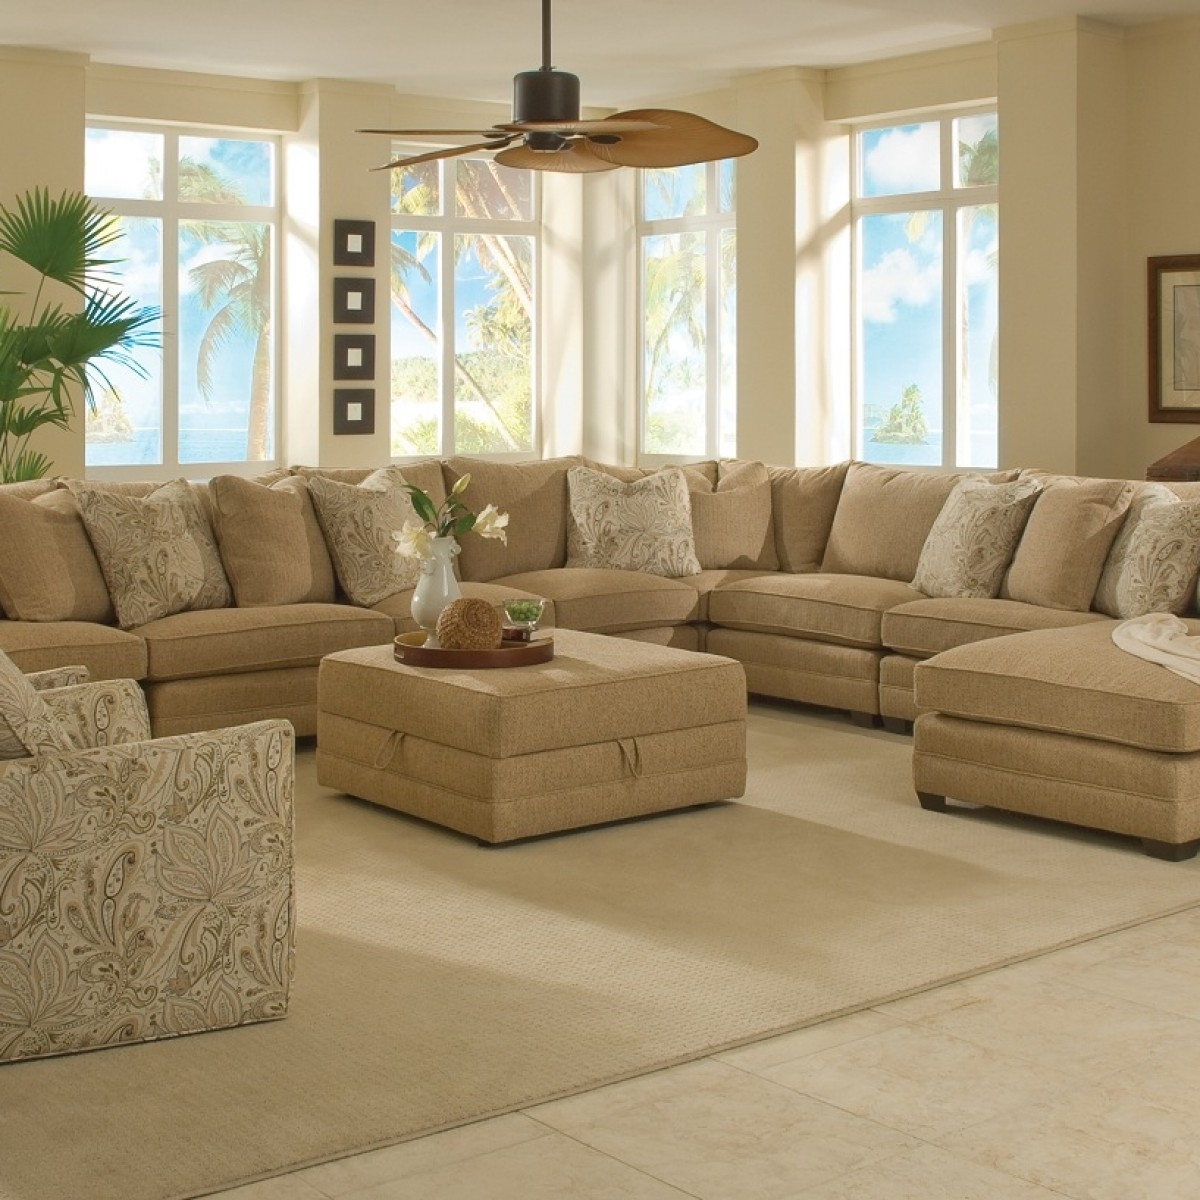 Factors To Consider Before Buying An Extra Large Sectional Sofa With Regard To Large Sectional Sofas (Image 2 of 10)